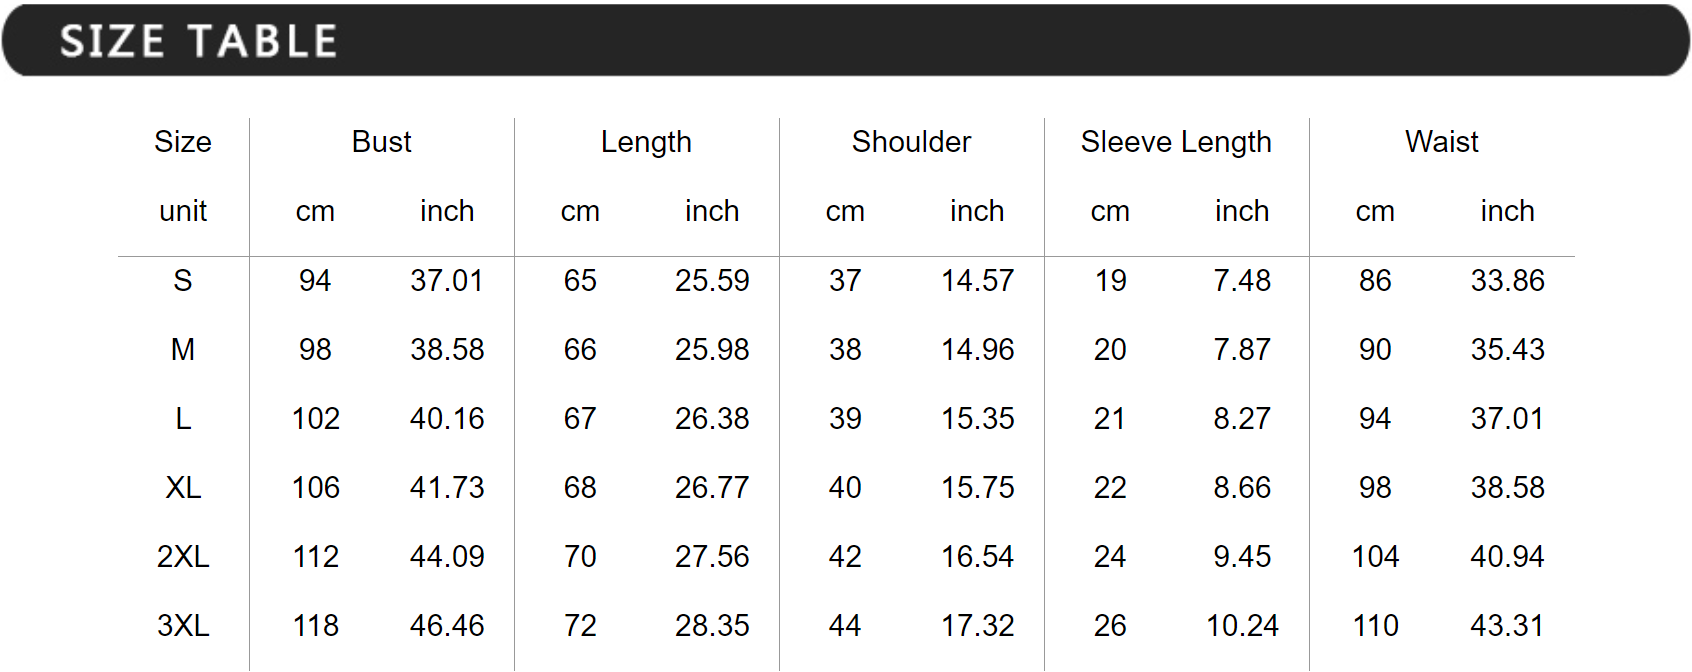 Inspire Uplift - T-Shirt Size Table